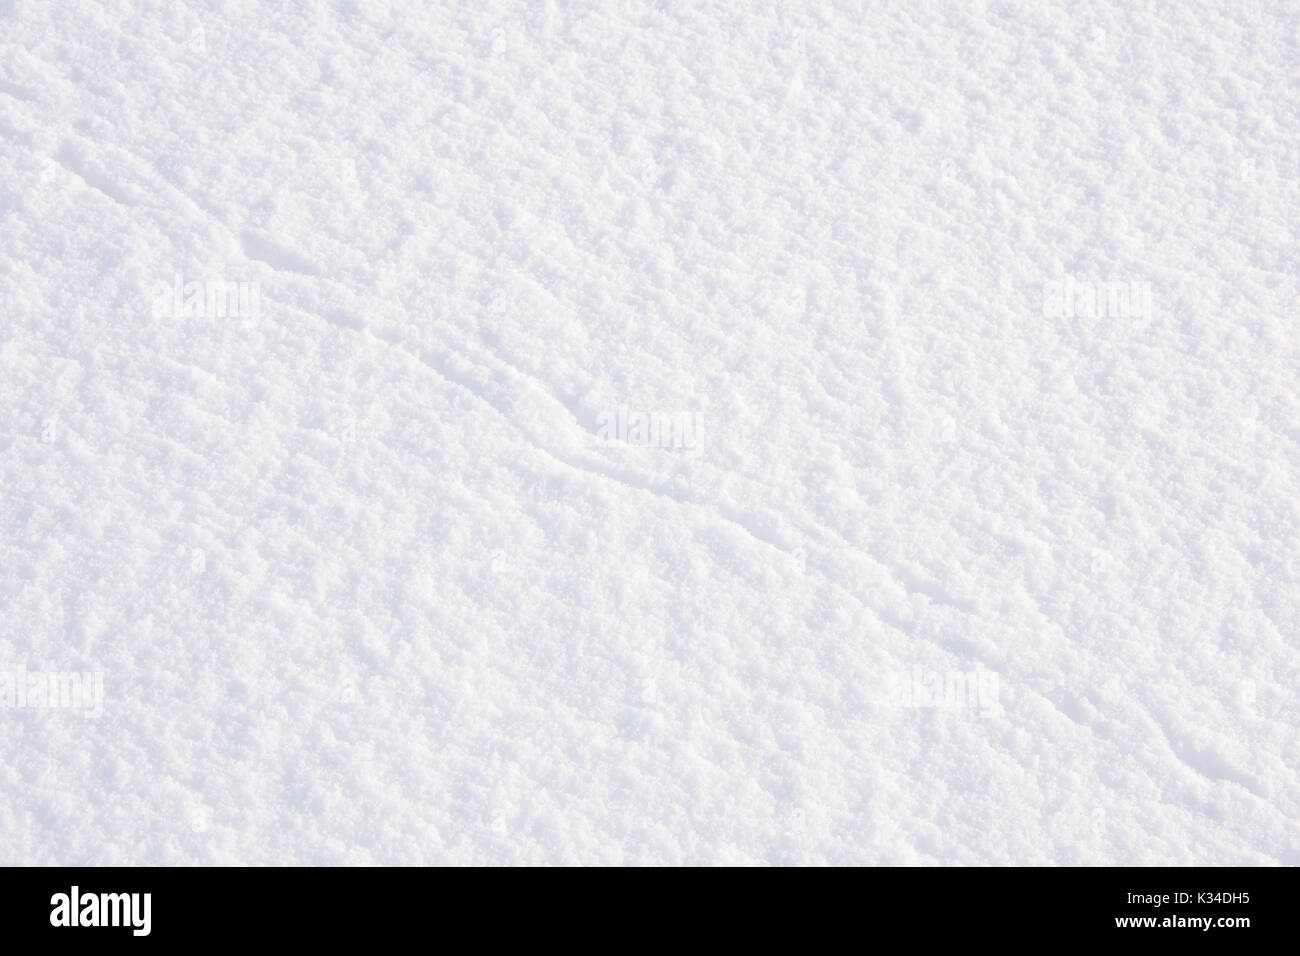 Background of snow with animal tracks - Stock Image